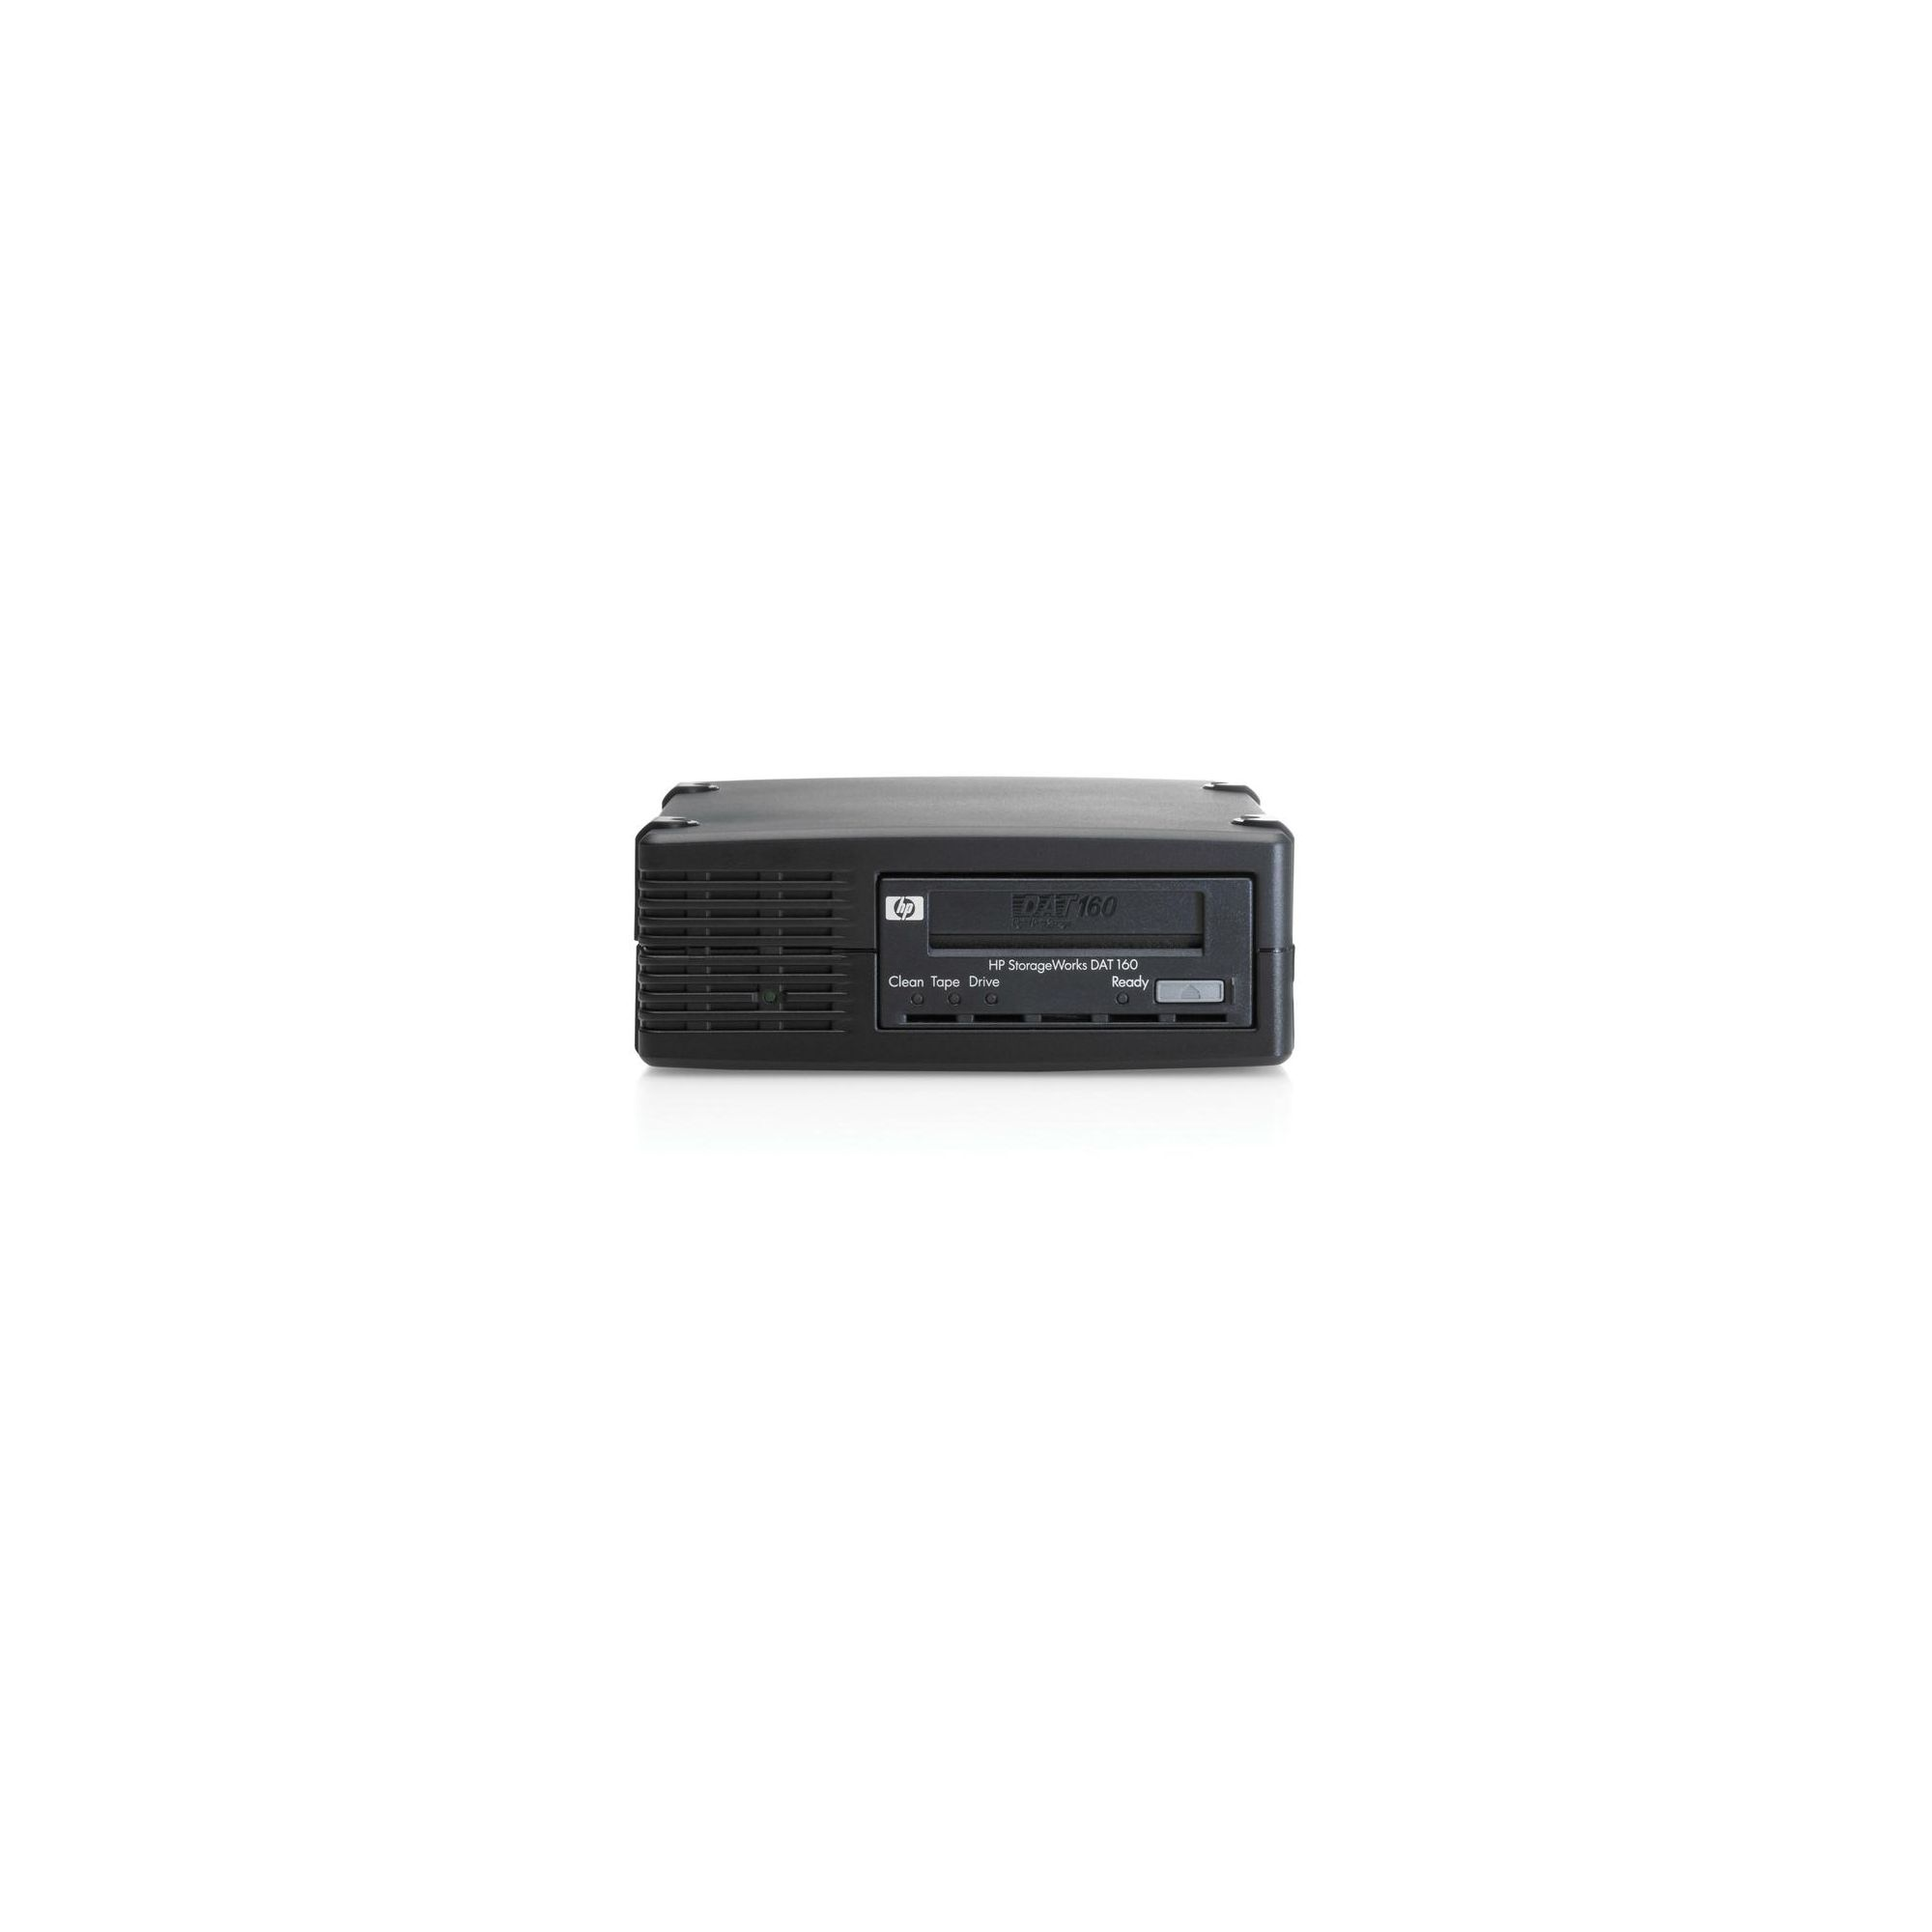 HP Q1573A StorageWorks DAT 160 SCSI Internal Tape Drive at Tesco Direct